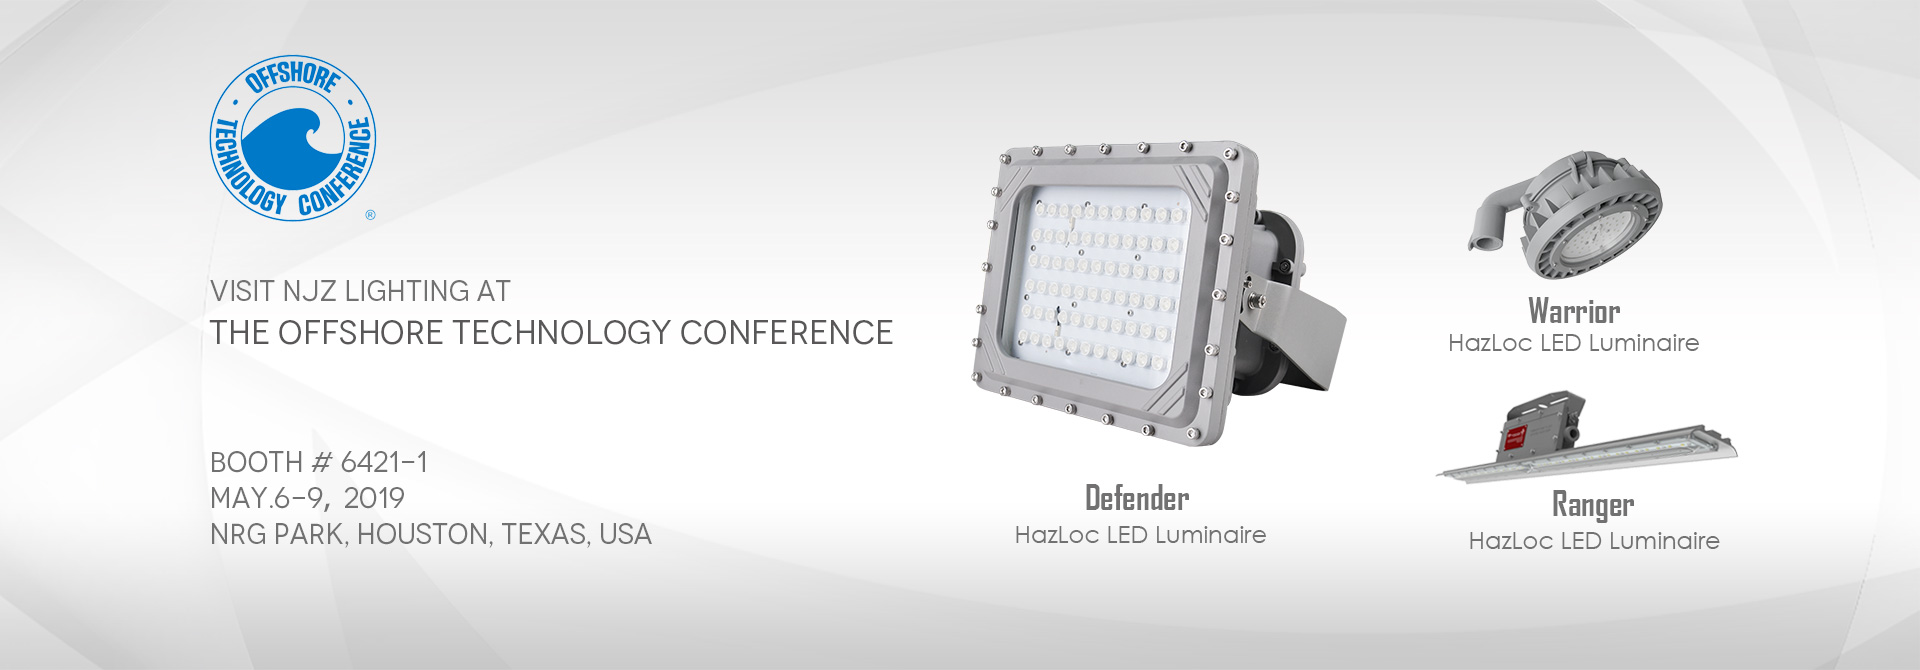 Visit NJZ Lighting at the Offshore Technology Conference 2019